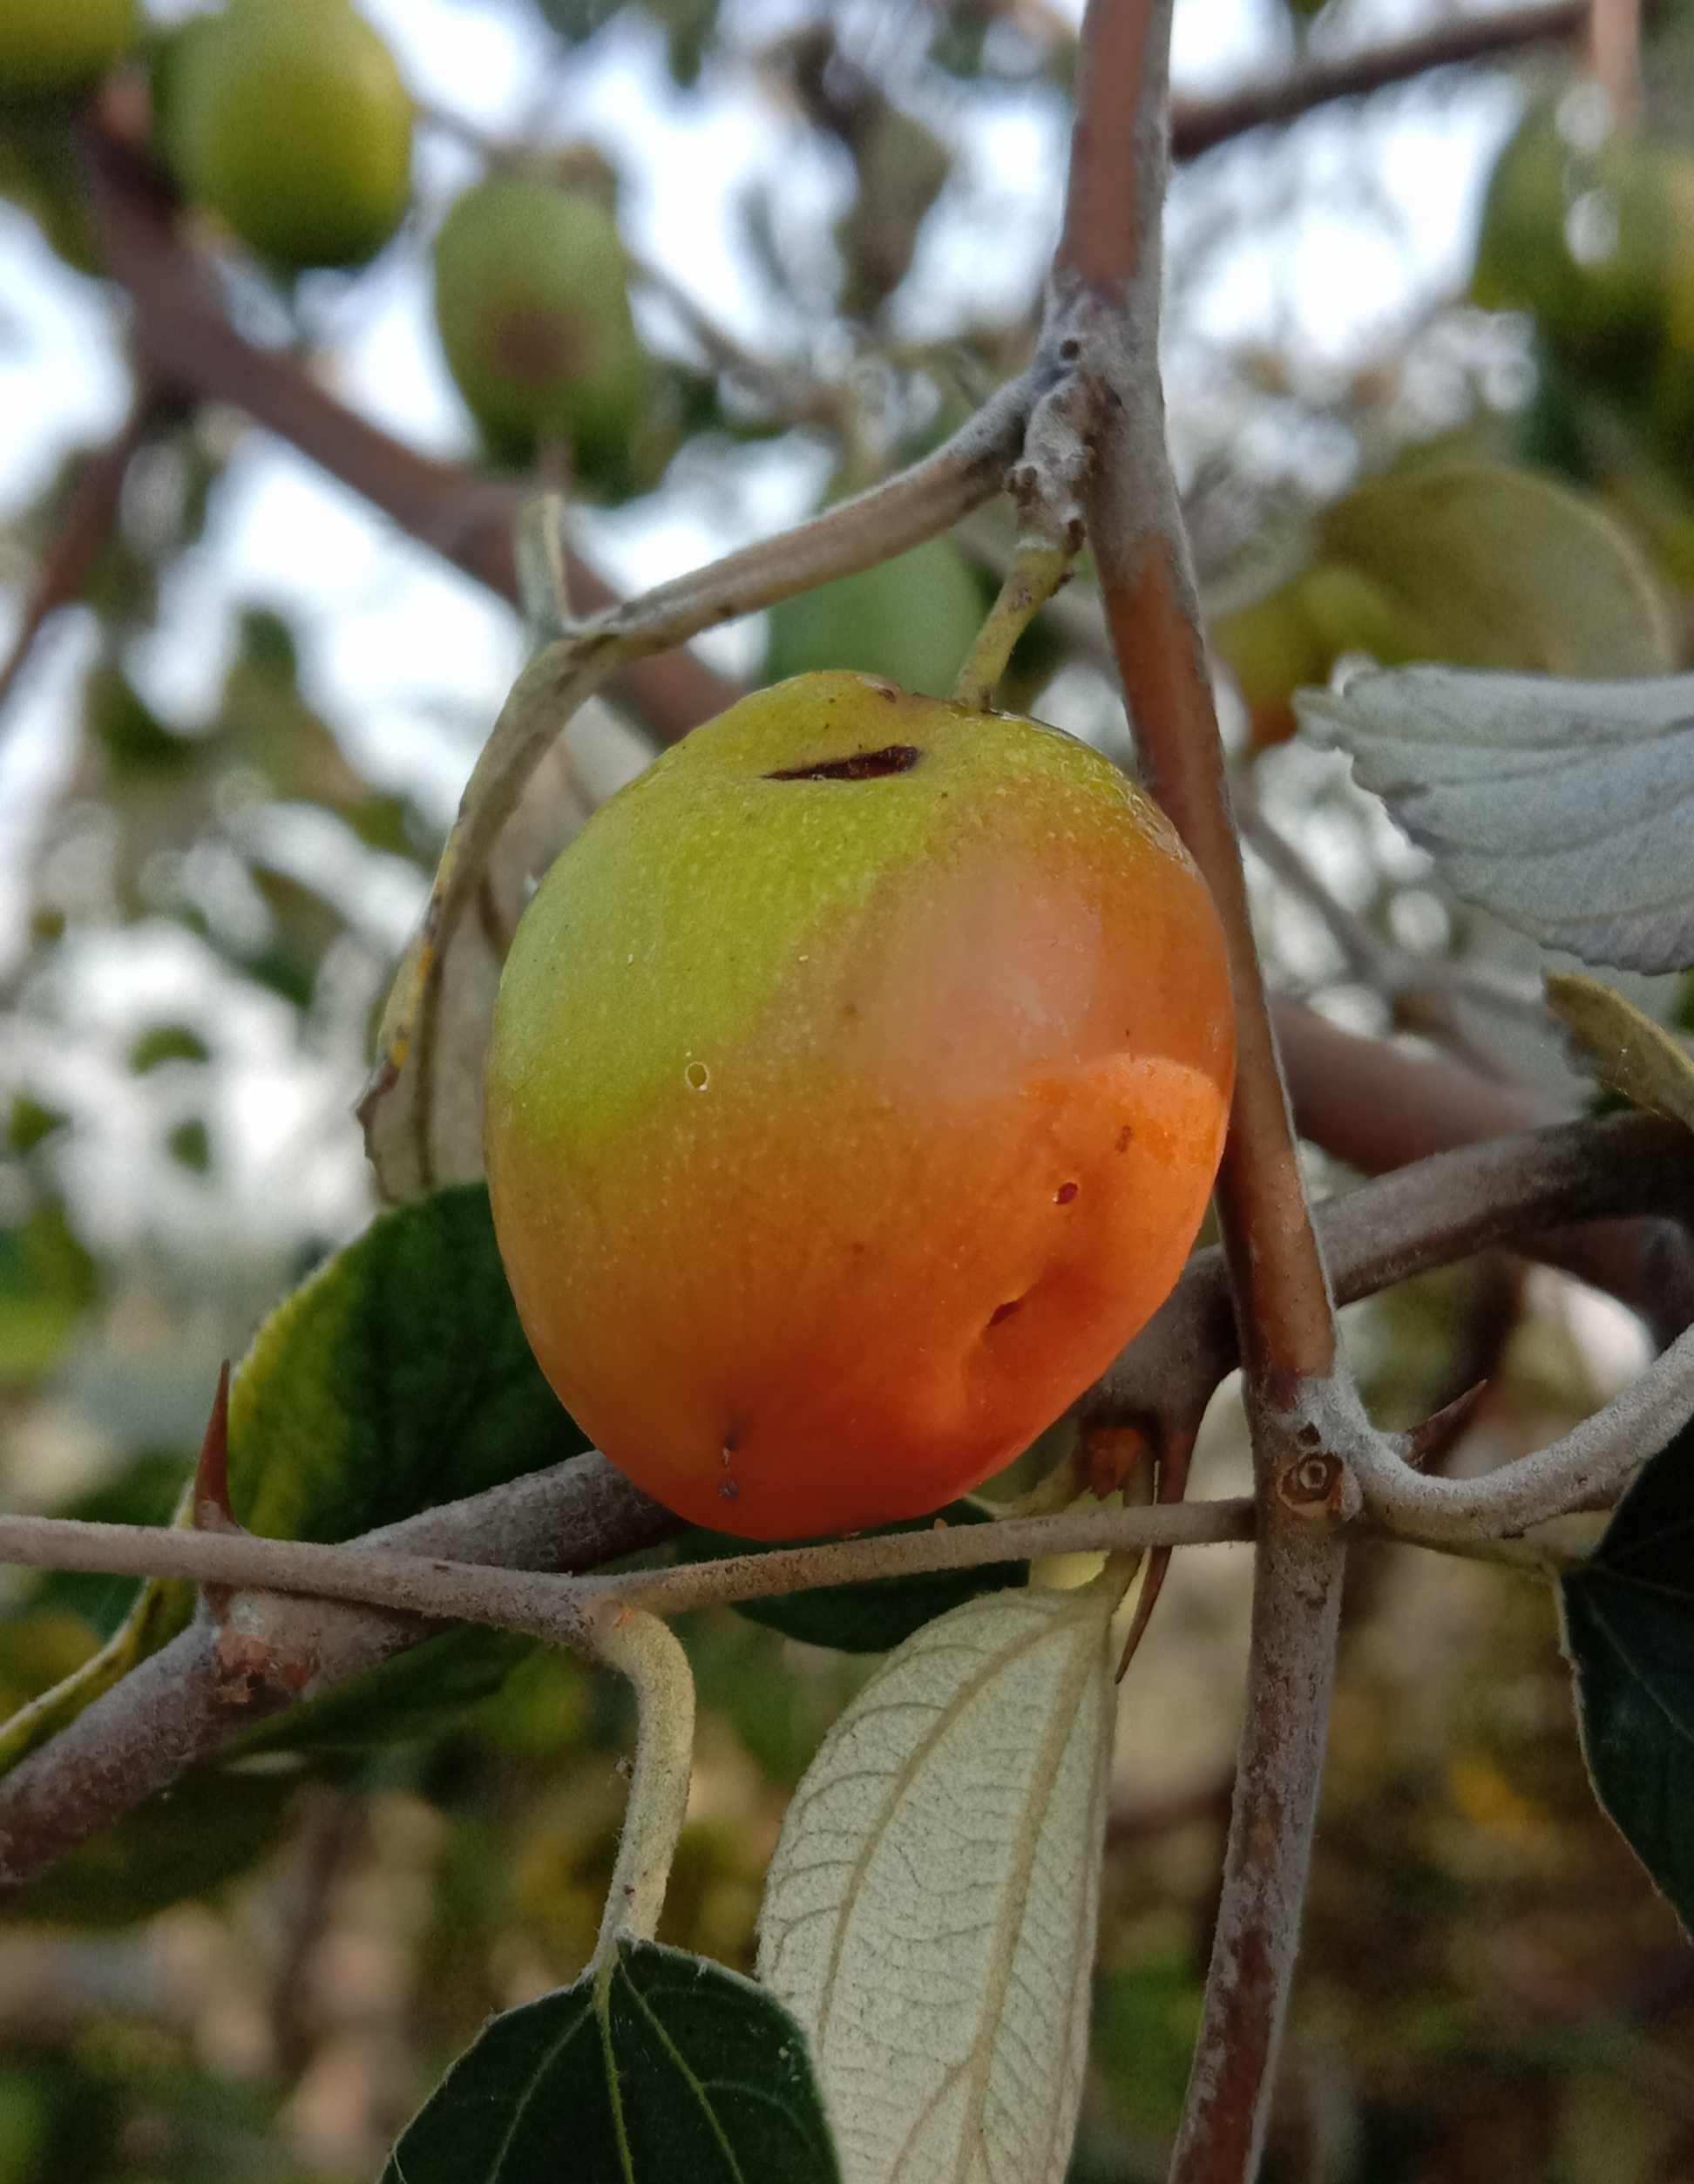 Fruit hanging on tree